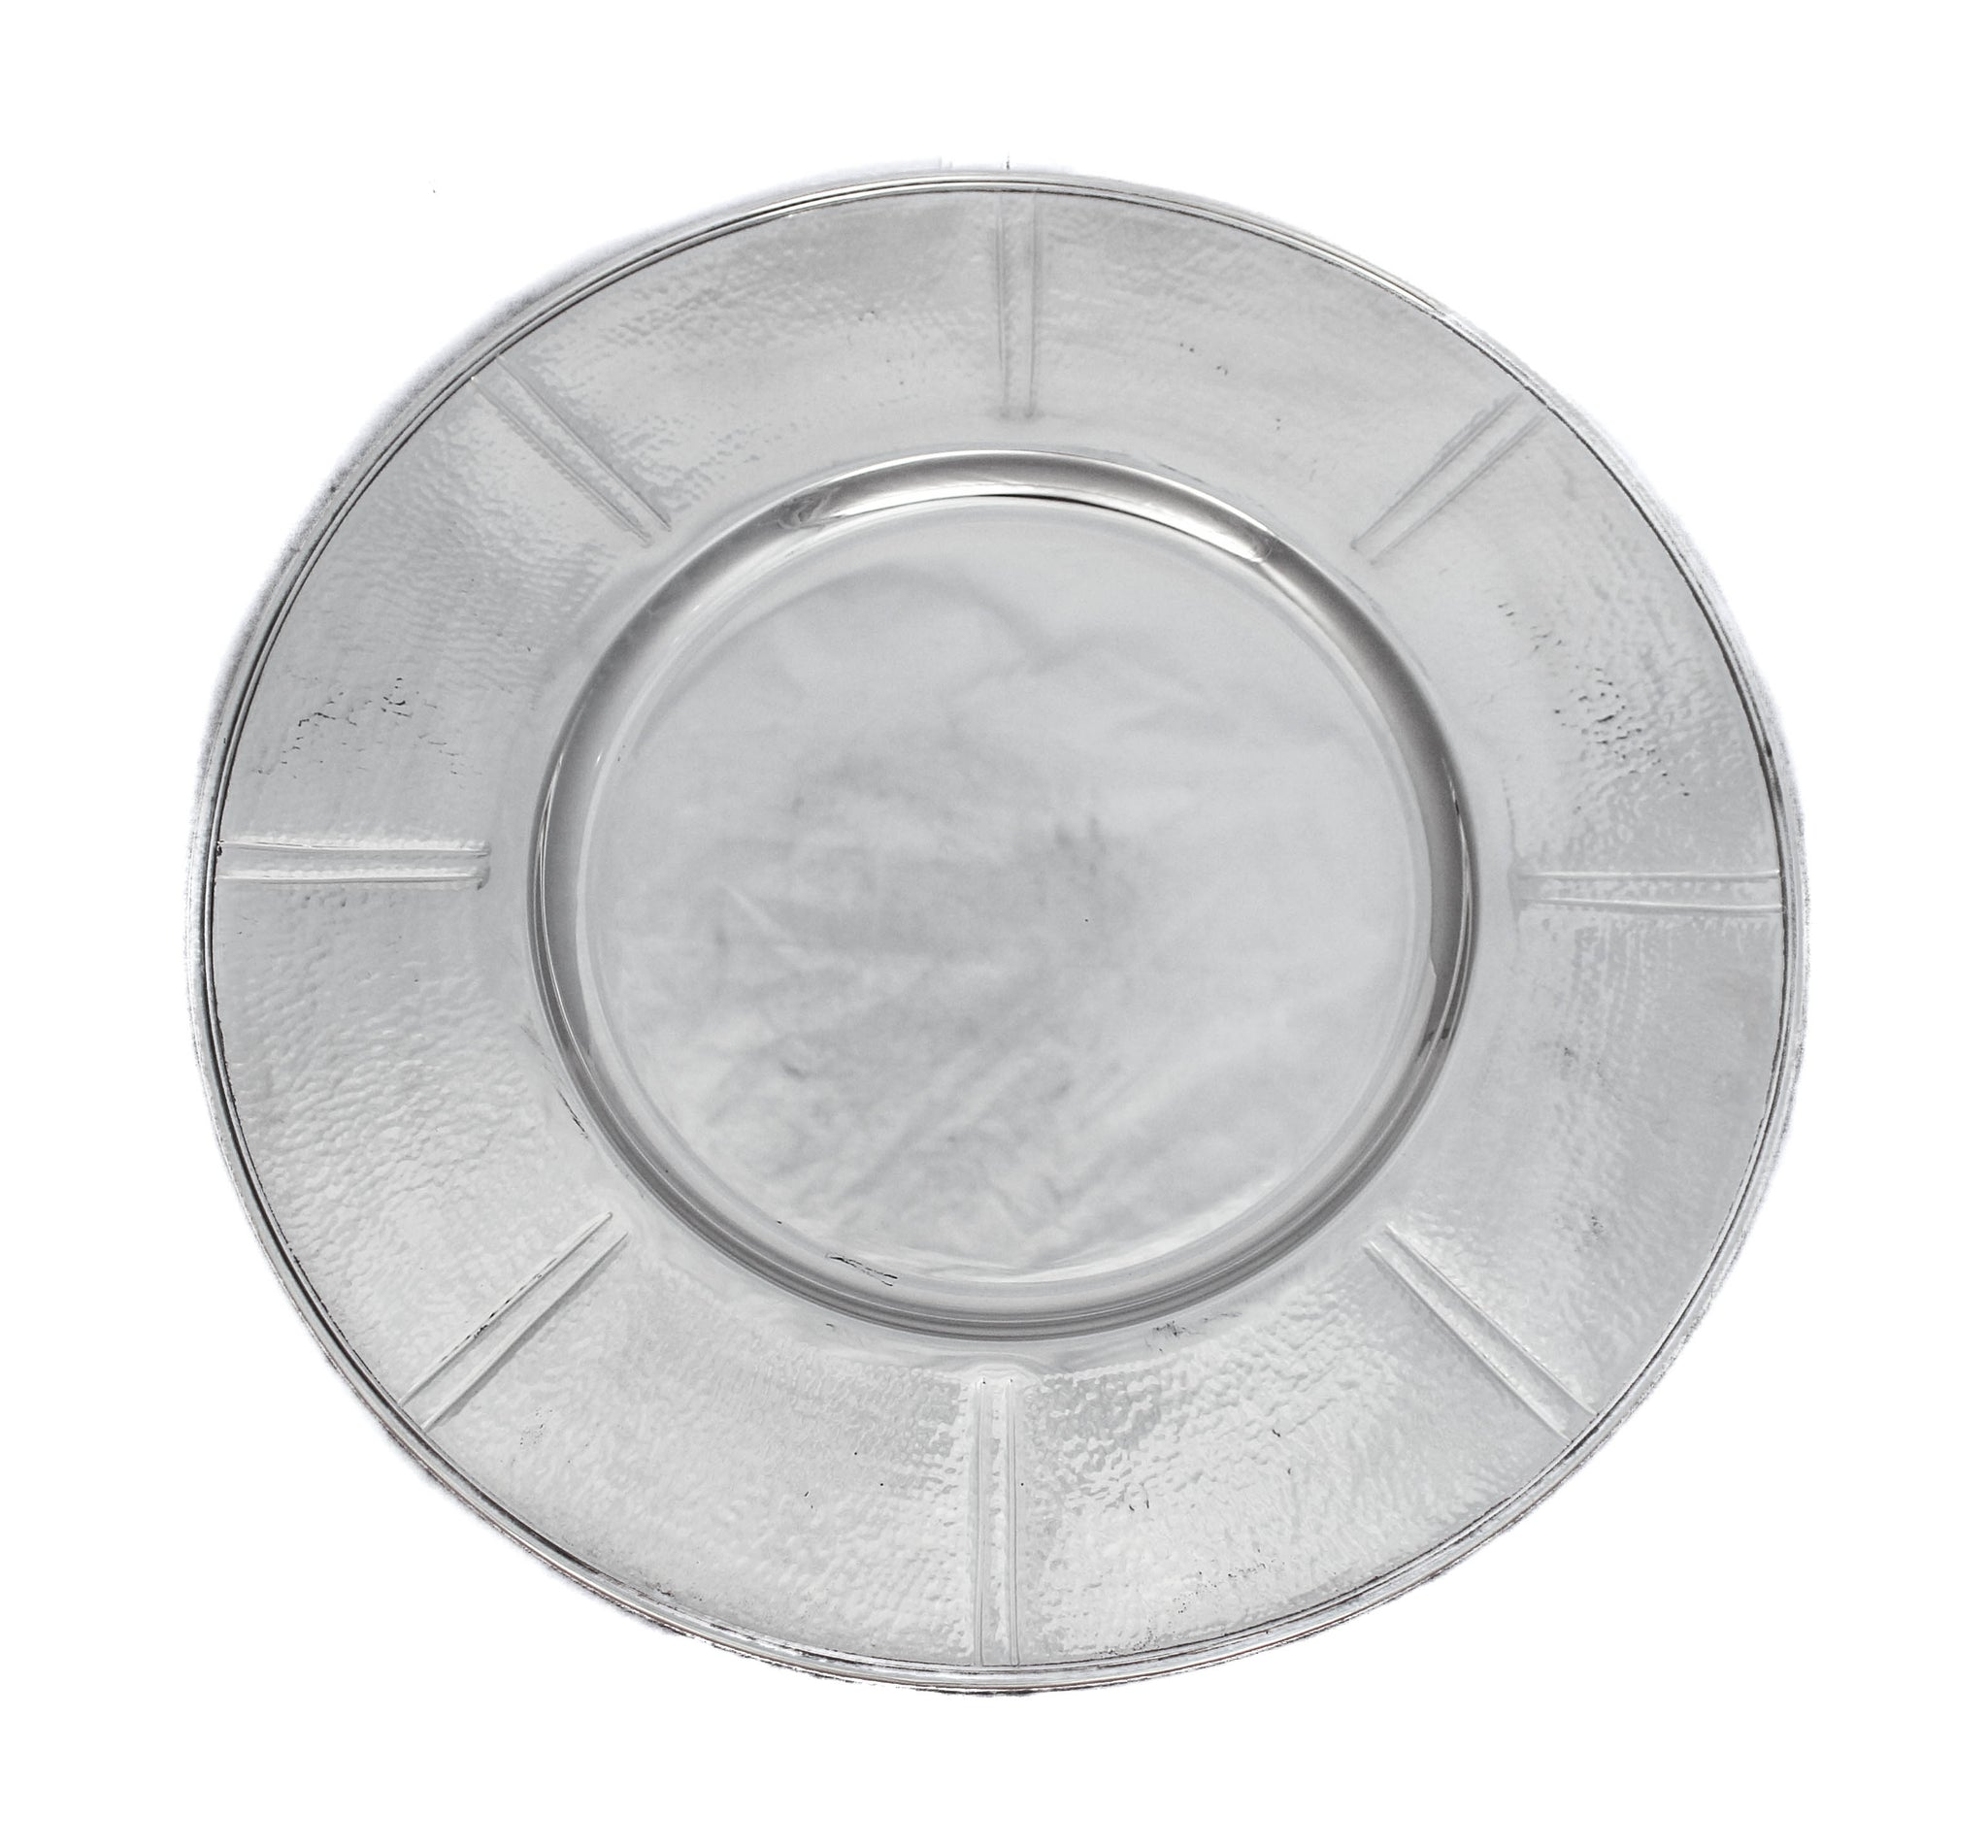 ITALIAN 925 STERLING SILVER ROUND MODERN SLEEK HAMMERED TRAY